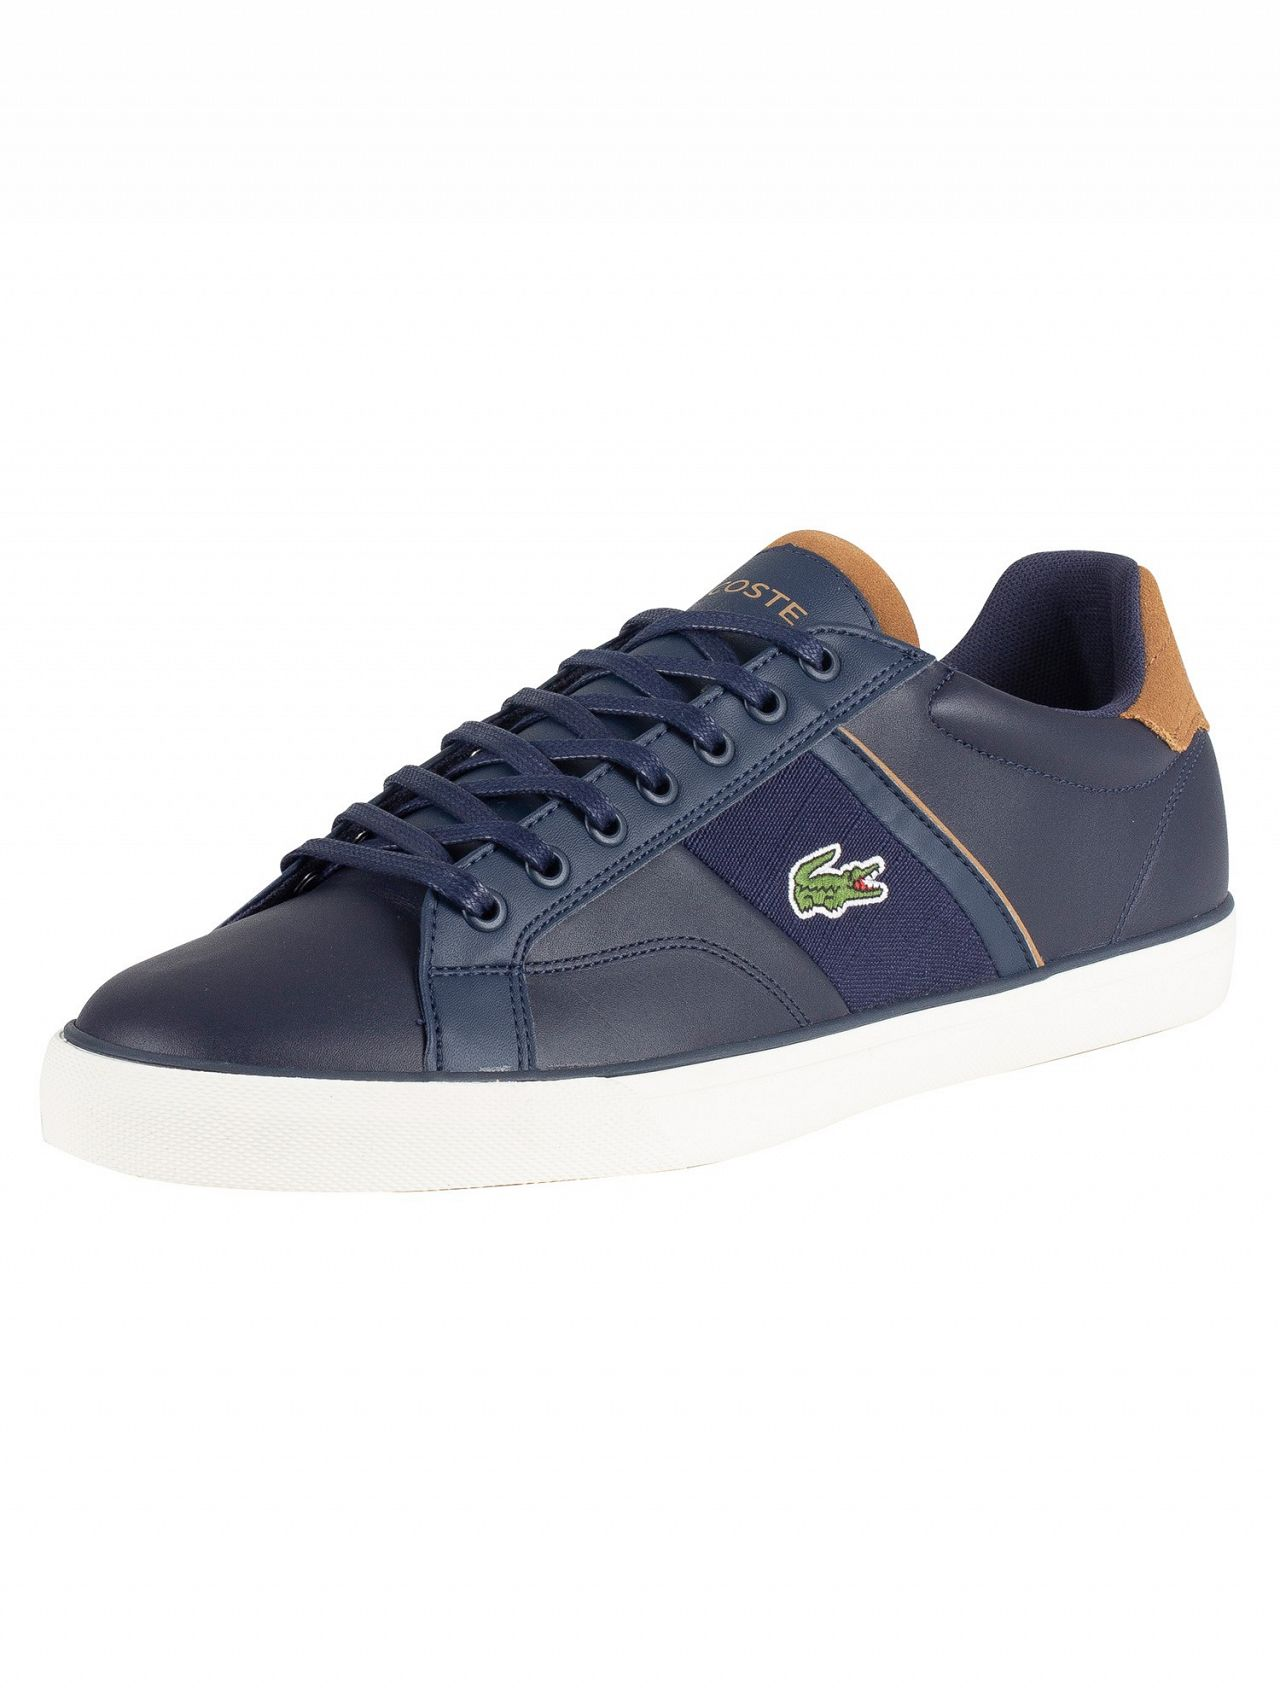 e994af7dced4 Lacoste Navy Light Brown Fairlead 119 1 CMA Leather Trainers